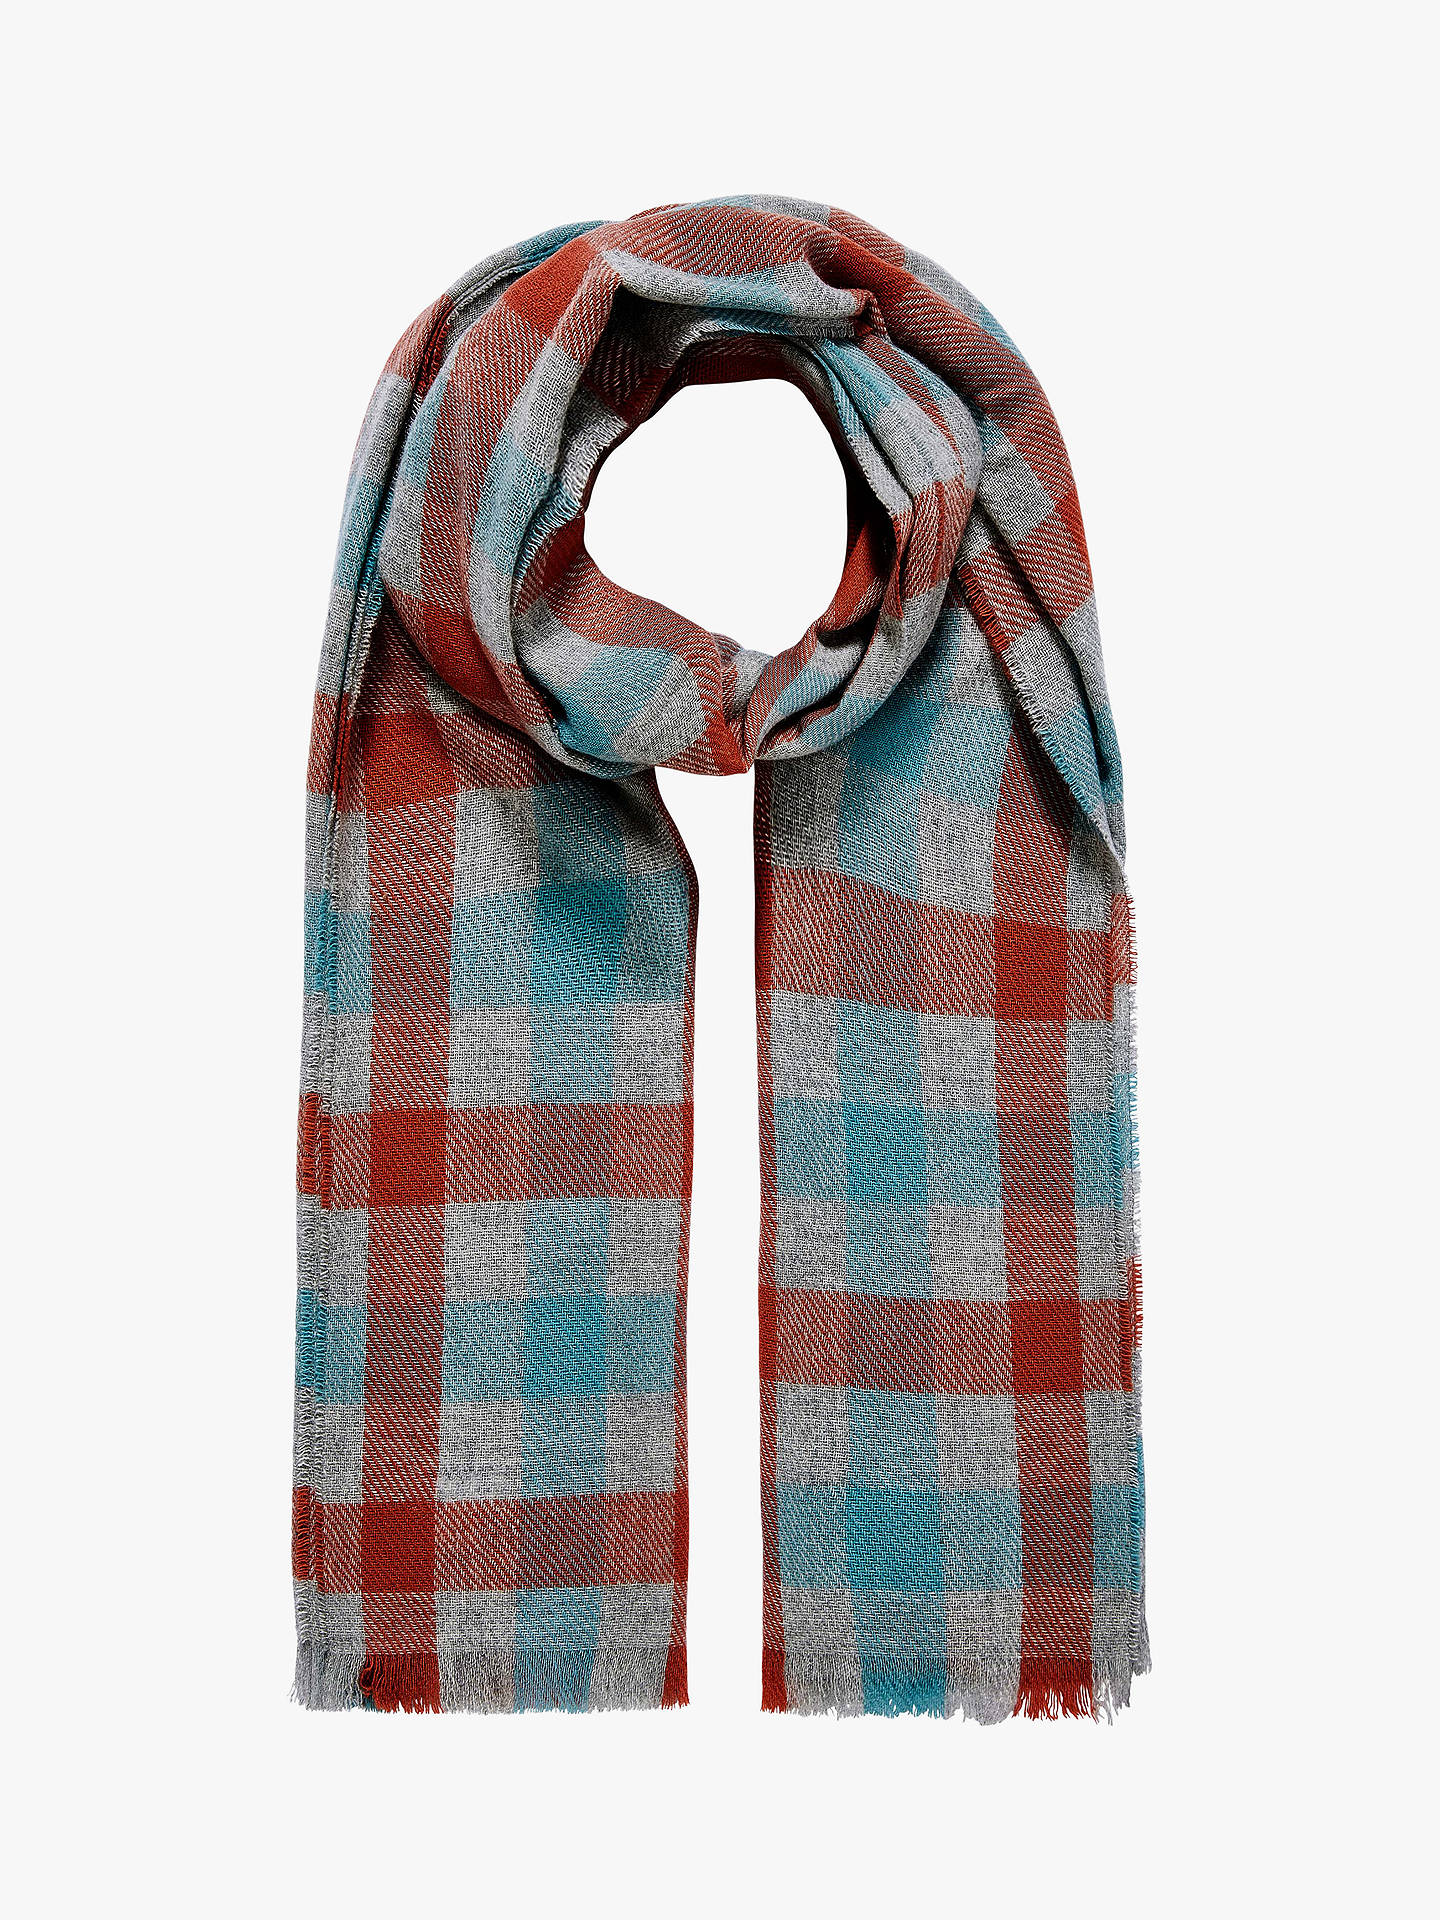 BuyBrora Cashmere Plaid Block Stole Scarf, Duck Egg & Clementine Online at johnlewis.com